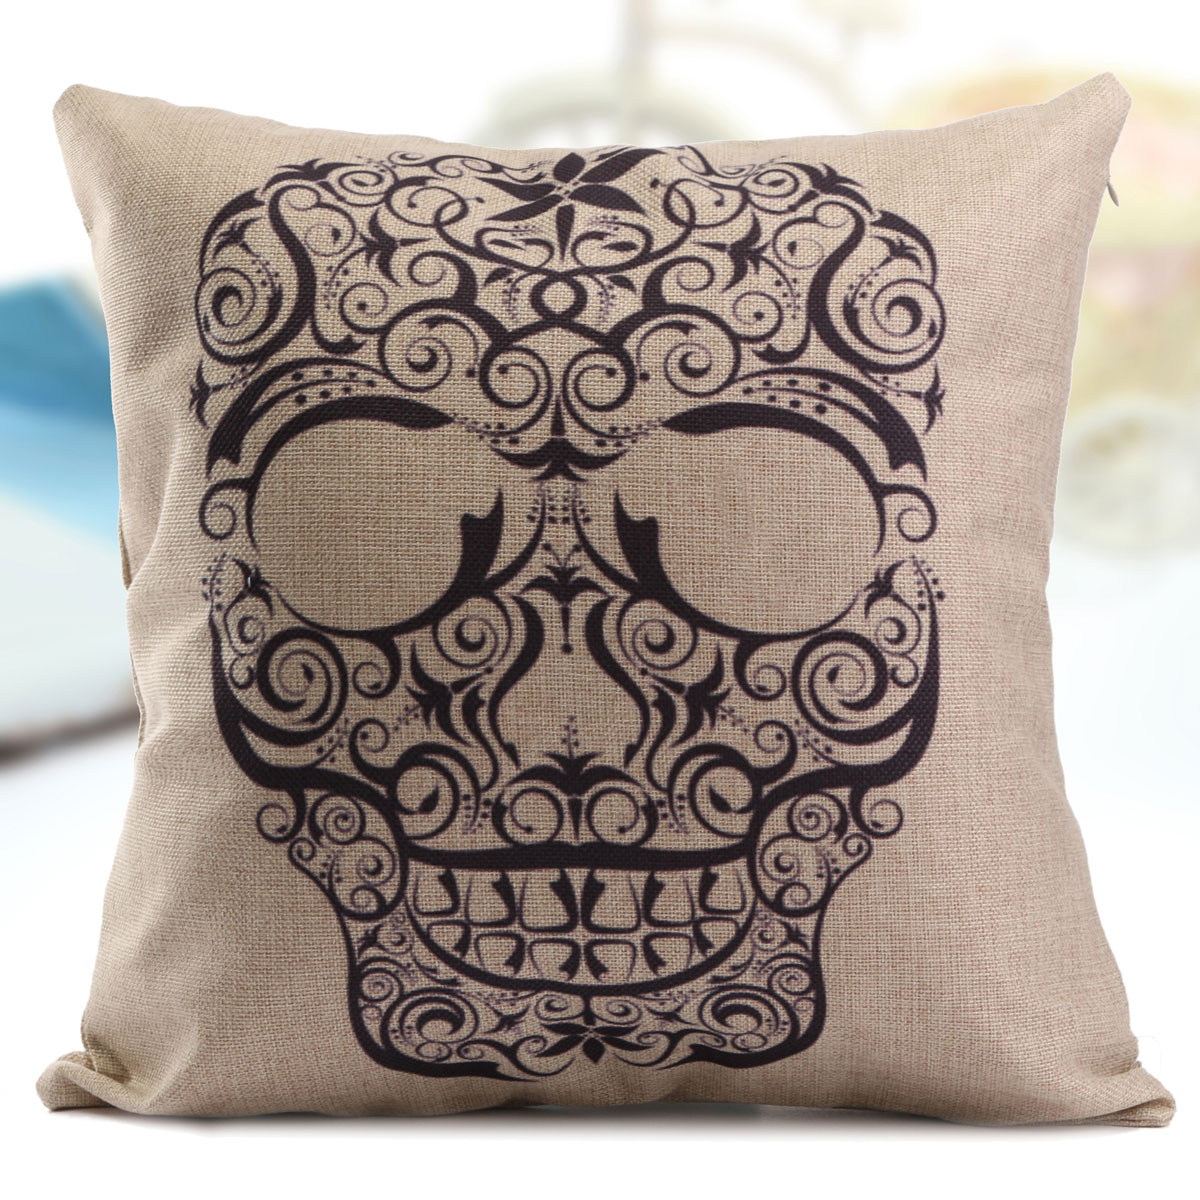 White Linen Throw Pillow : Vintage Black and White Linen Skull Throw Pillow Case Sofa Cushion Cover Decor eBay